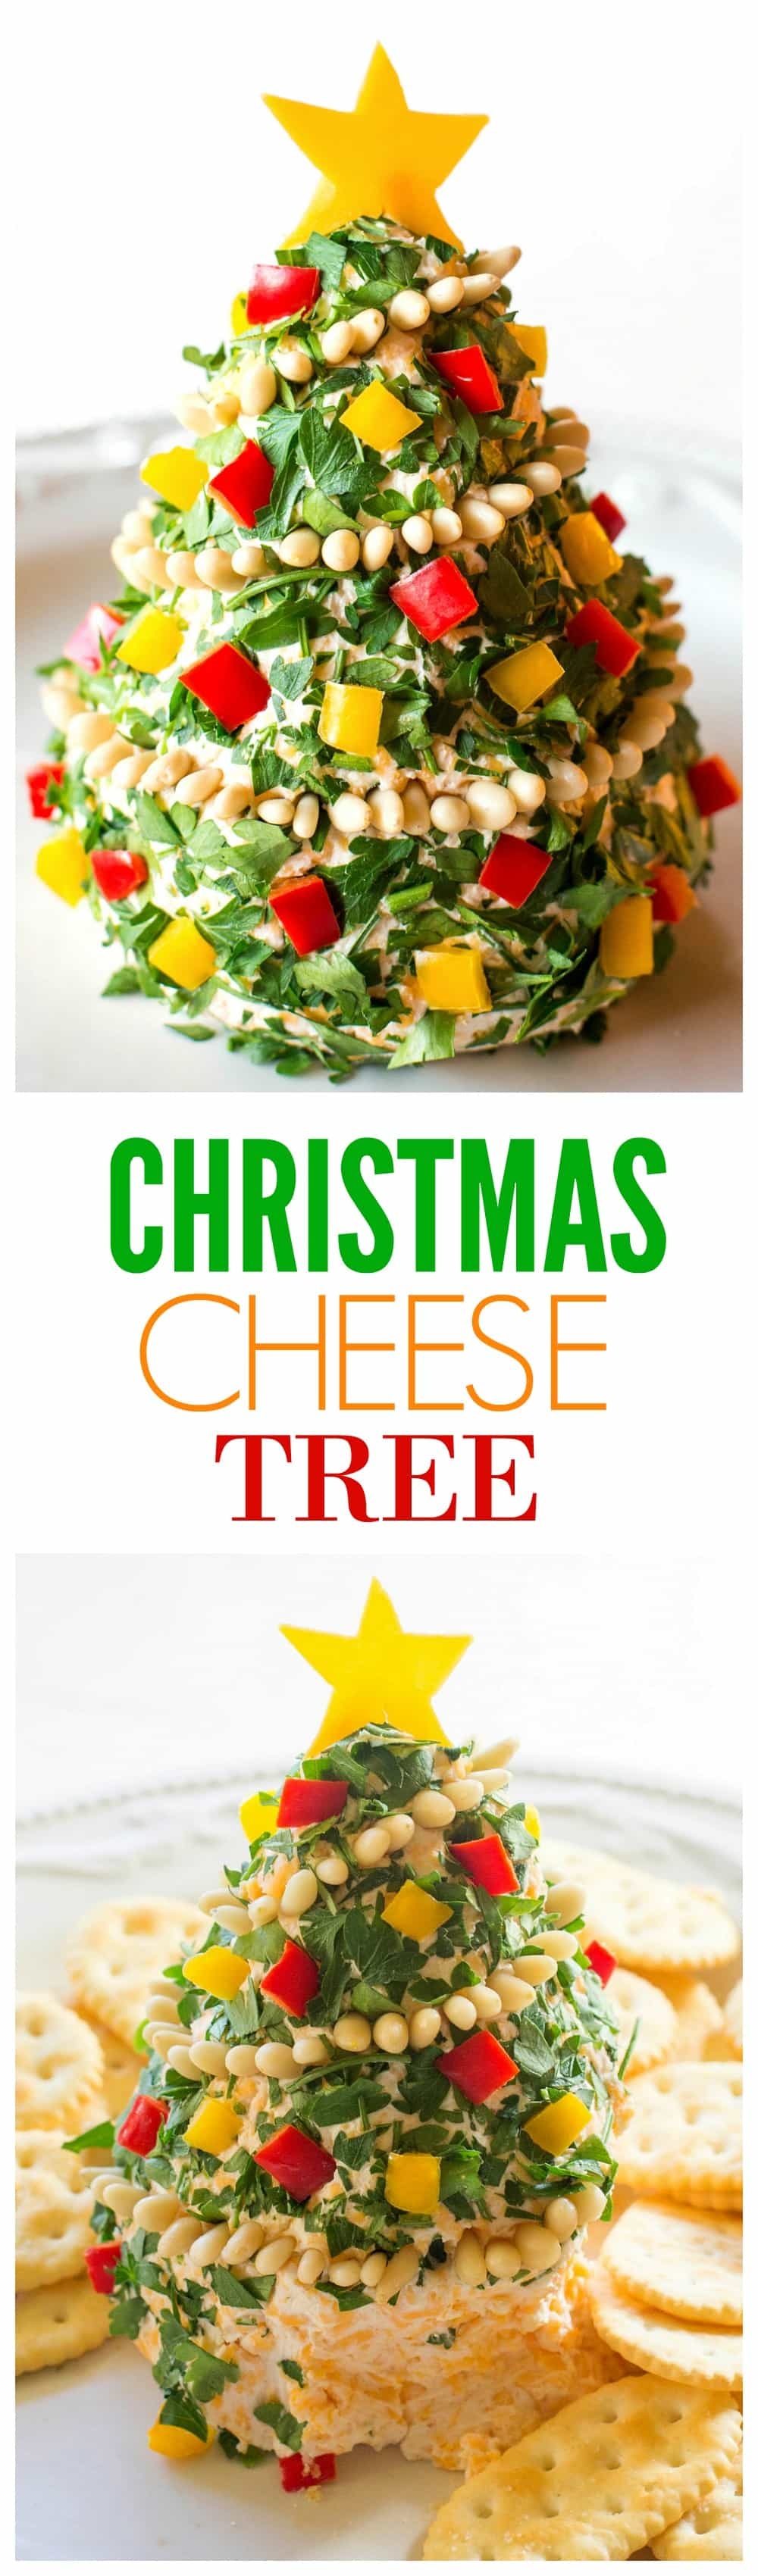 Christmas Cheese Tree - super simple yet impressive cheese ball shaped in a tree! #christmas #cheese #tree #appetizer #recipe